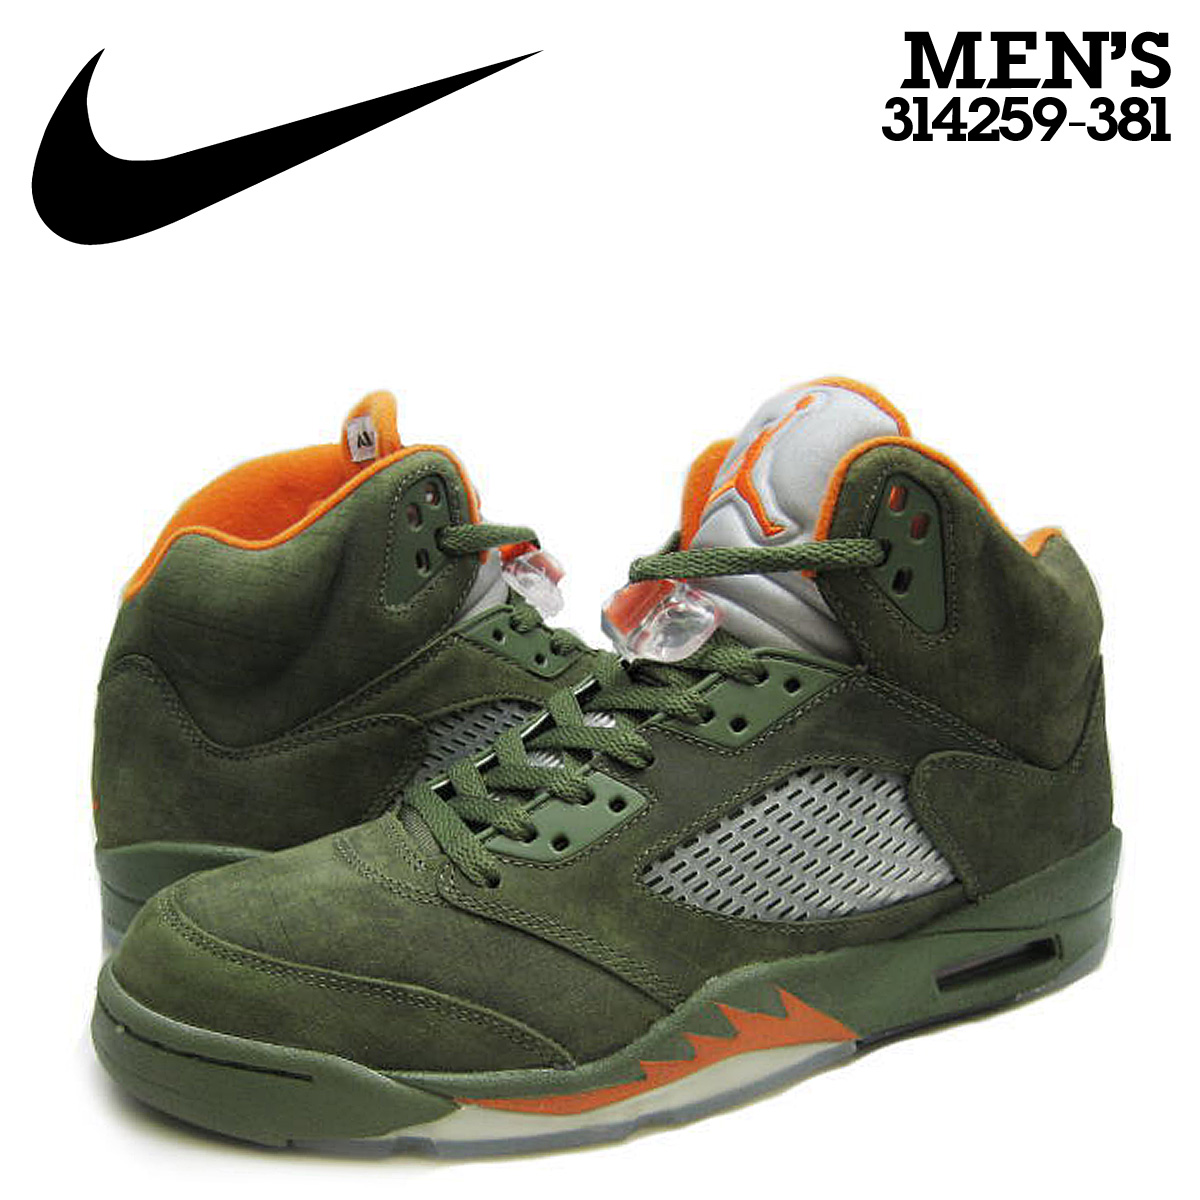 huge selection of fdbe4 5fa35 Nike NIKE Air Jordan sneakers AIR JORDAN 5 RETRO LS ARMY OLIVE Air Jordan  retro lifestyle 314259-381 green mens